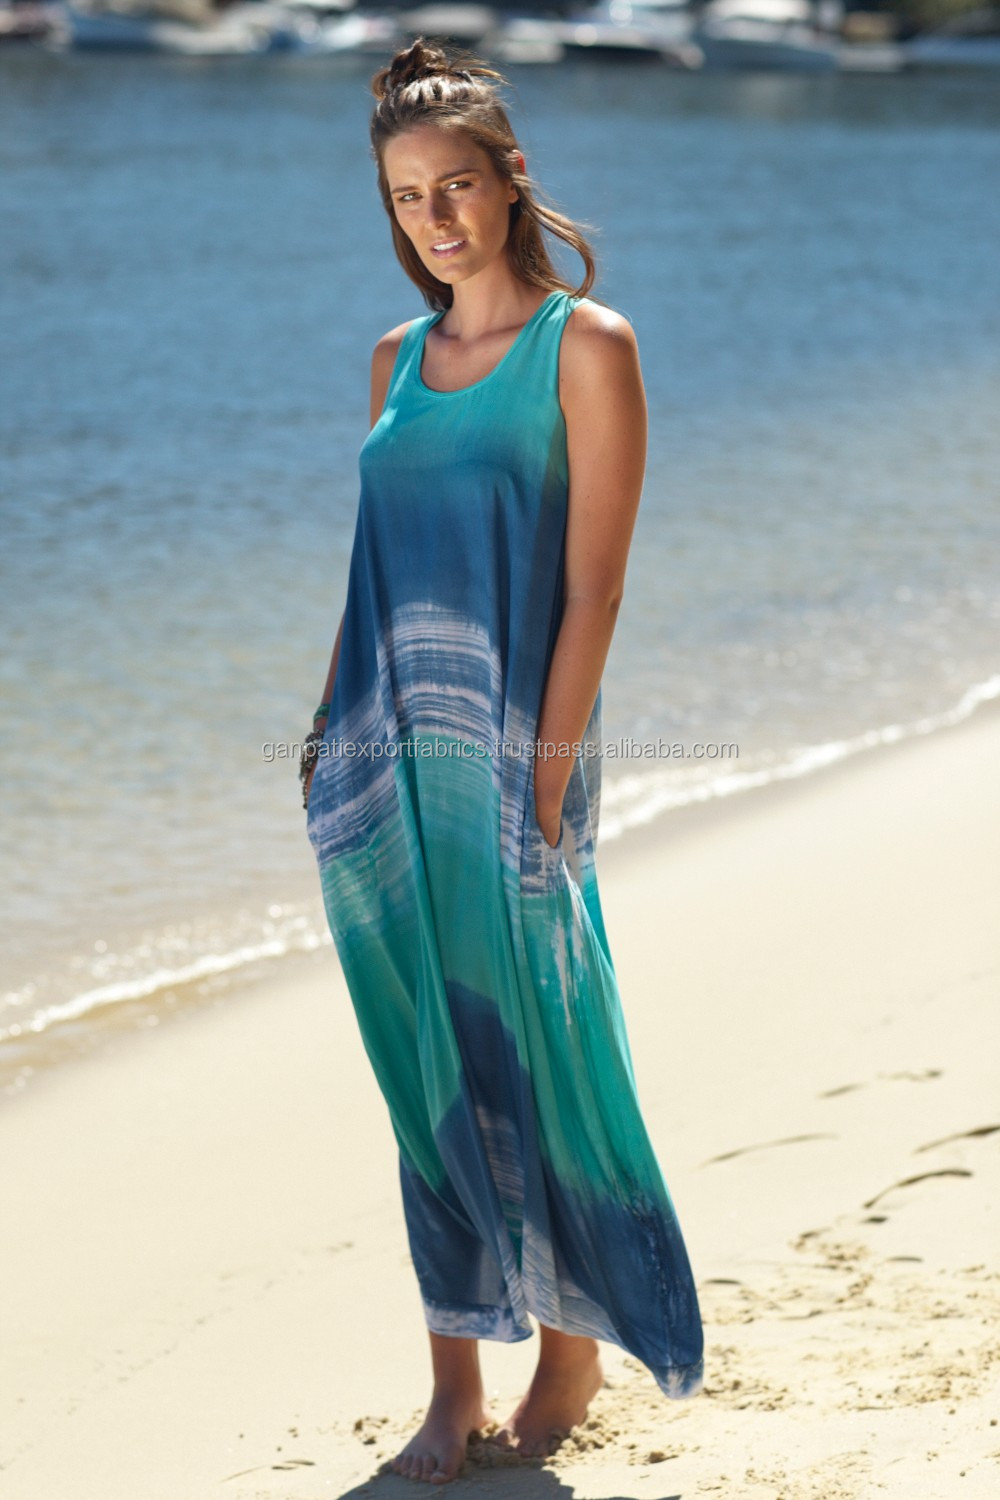 b1a9a3d75 Buy Beachwear Kaftans   Cover Ups From Direct Manufacturer ...